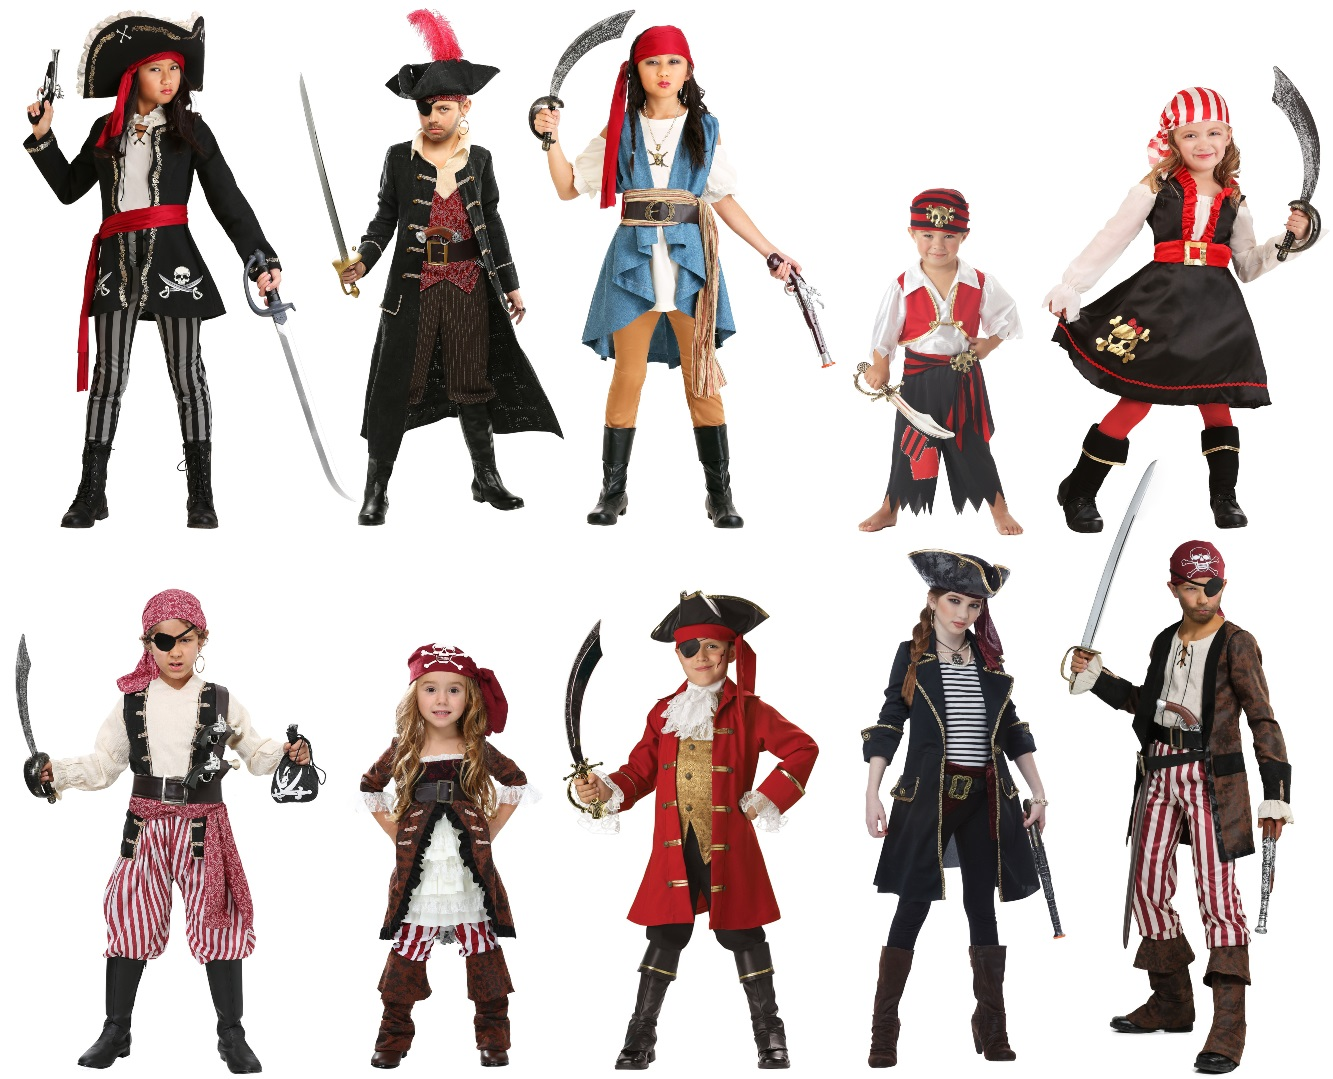 Renaissance Pirate Costumes for Kids